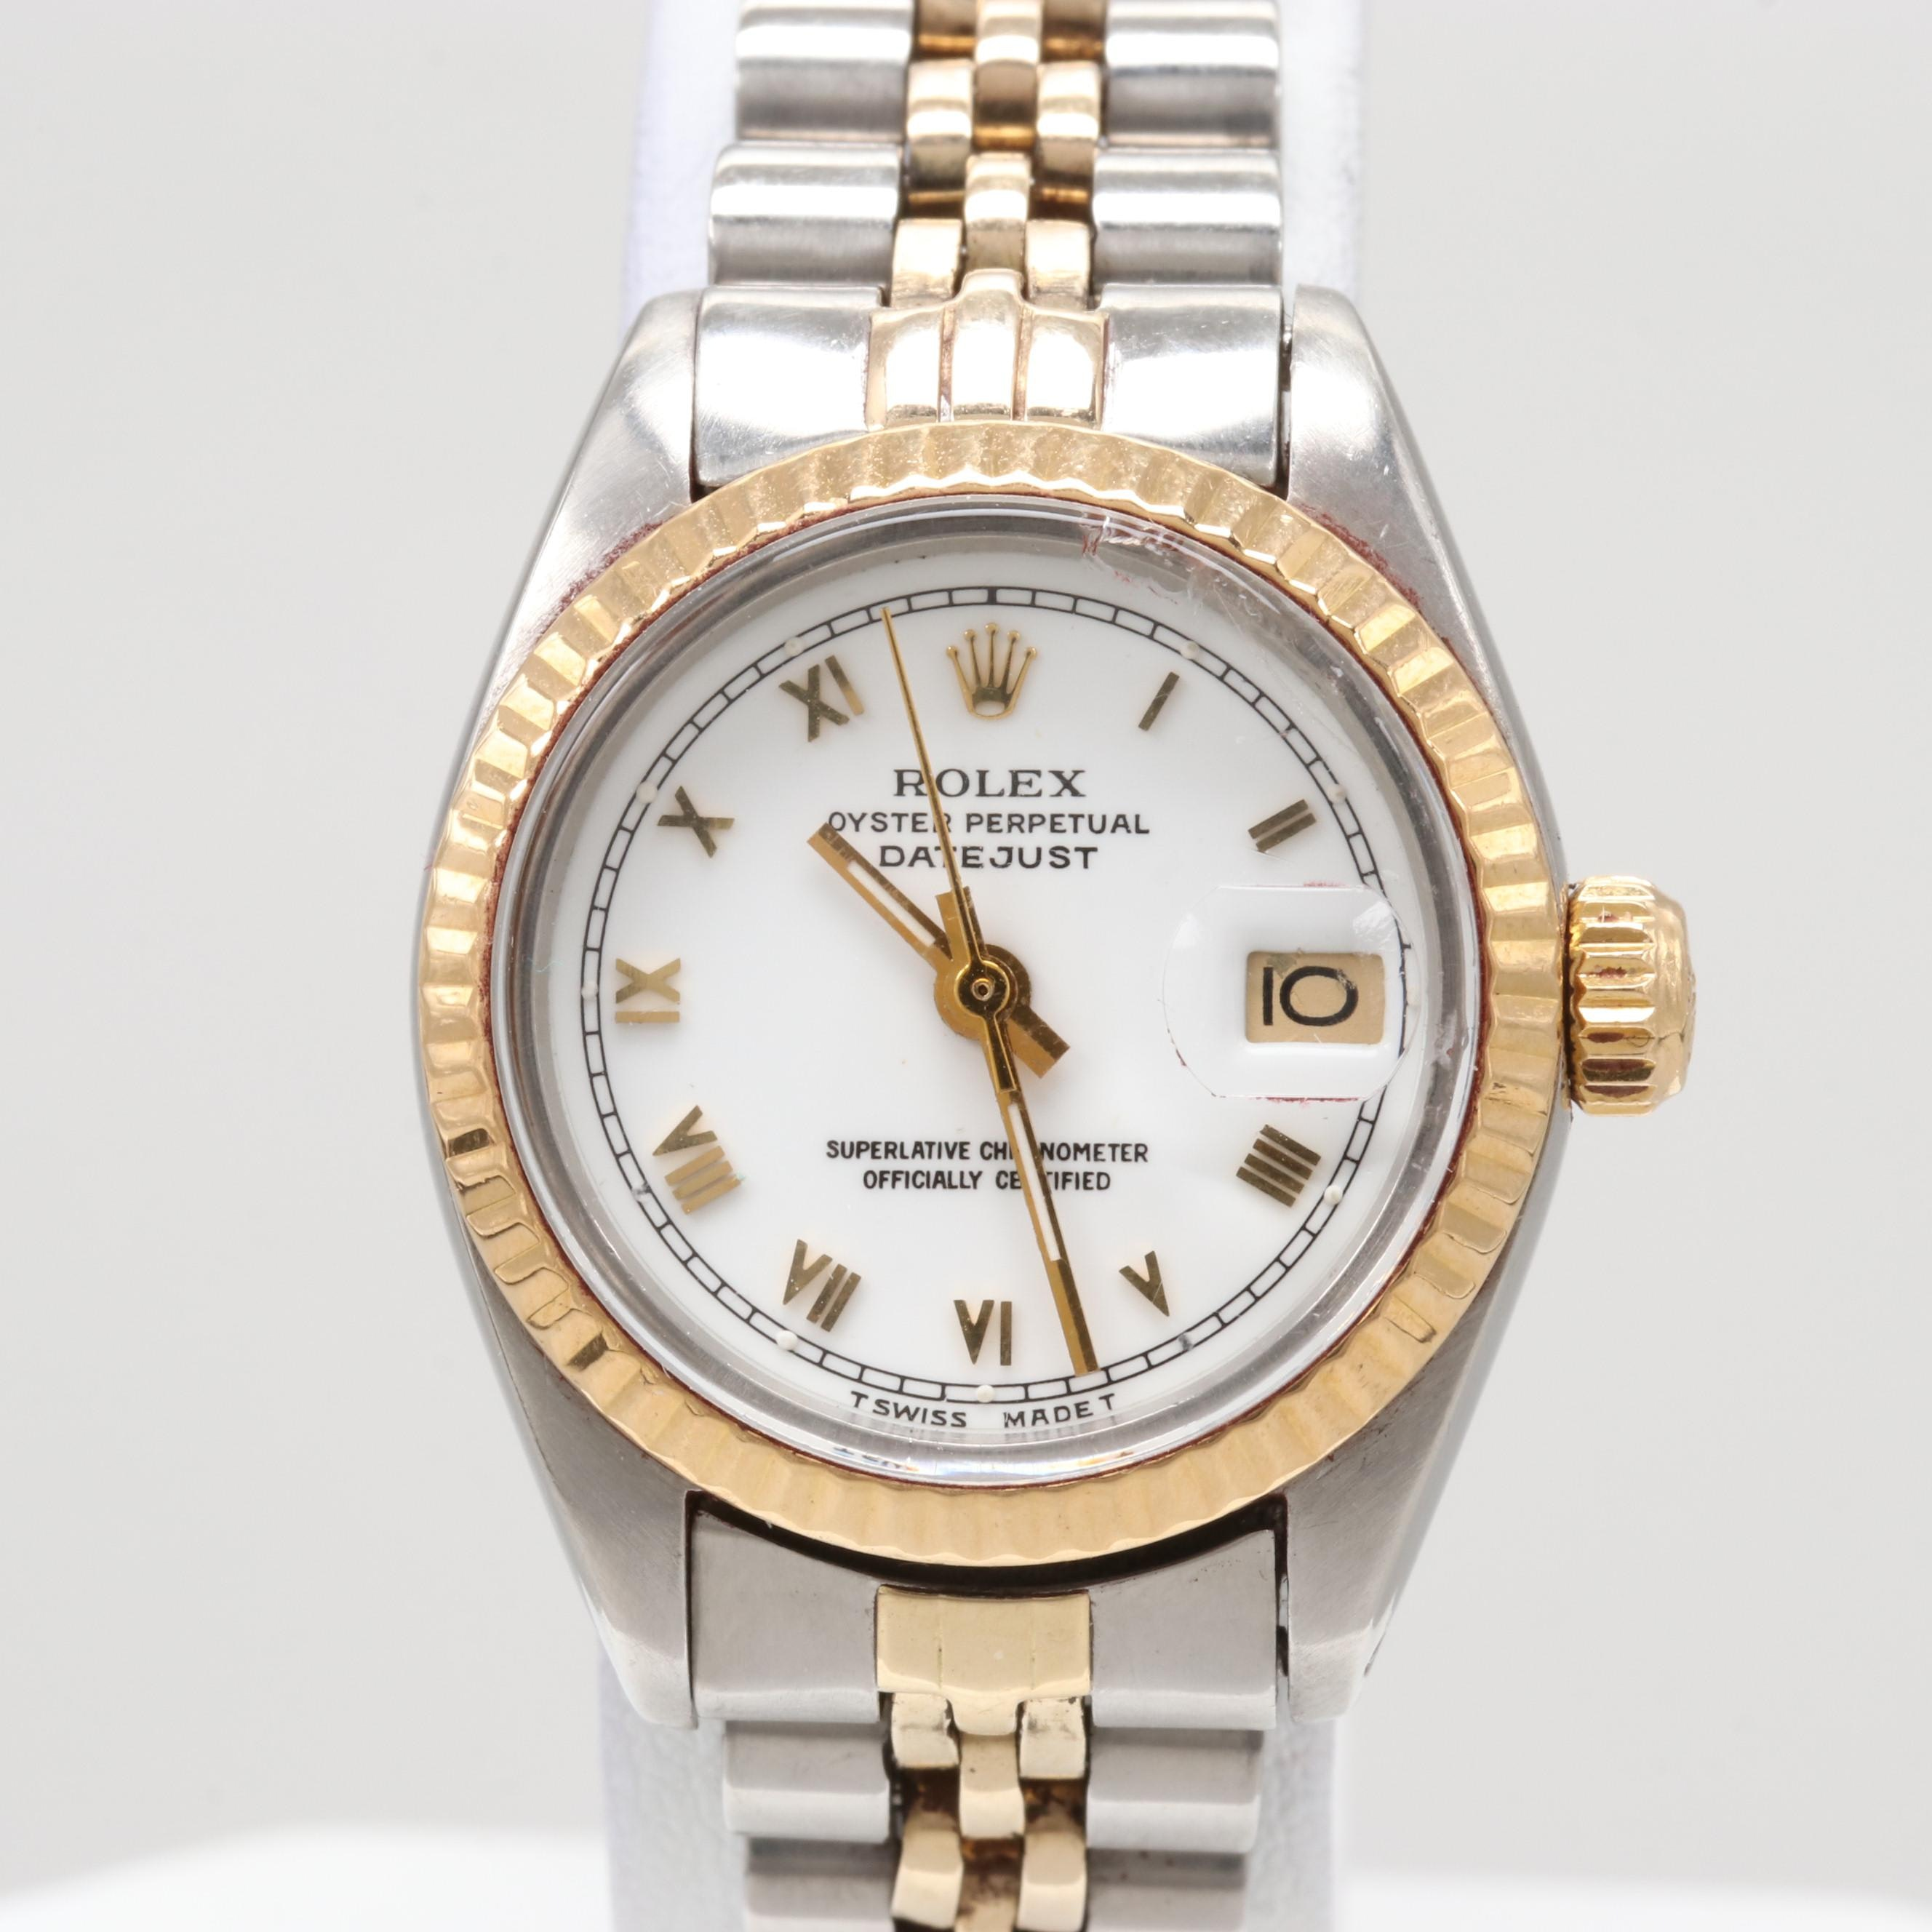 Rolex Datejust Stainless Steel and 18K Yellow Gold Wristwatch, 1981